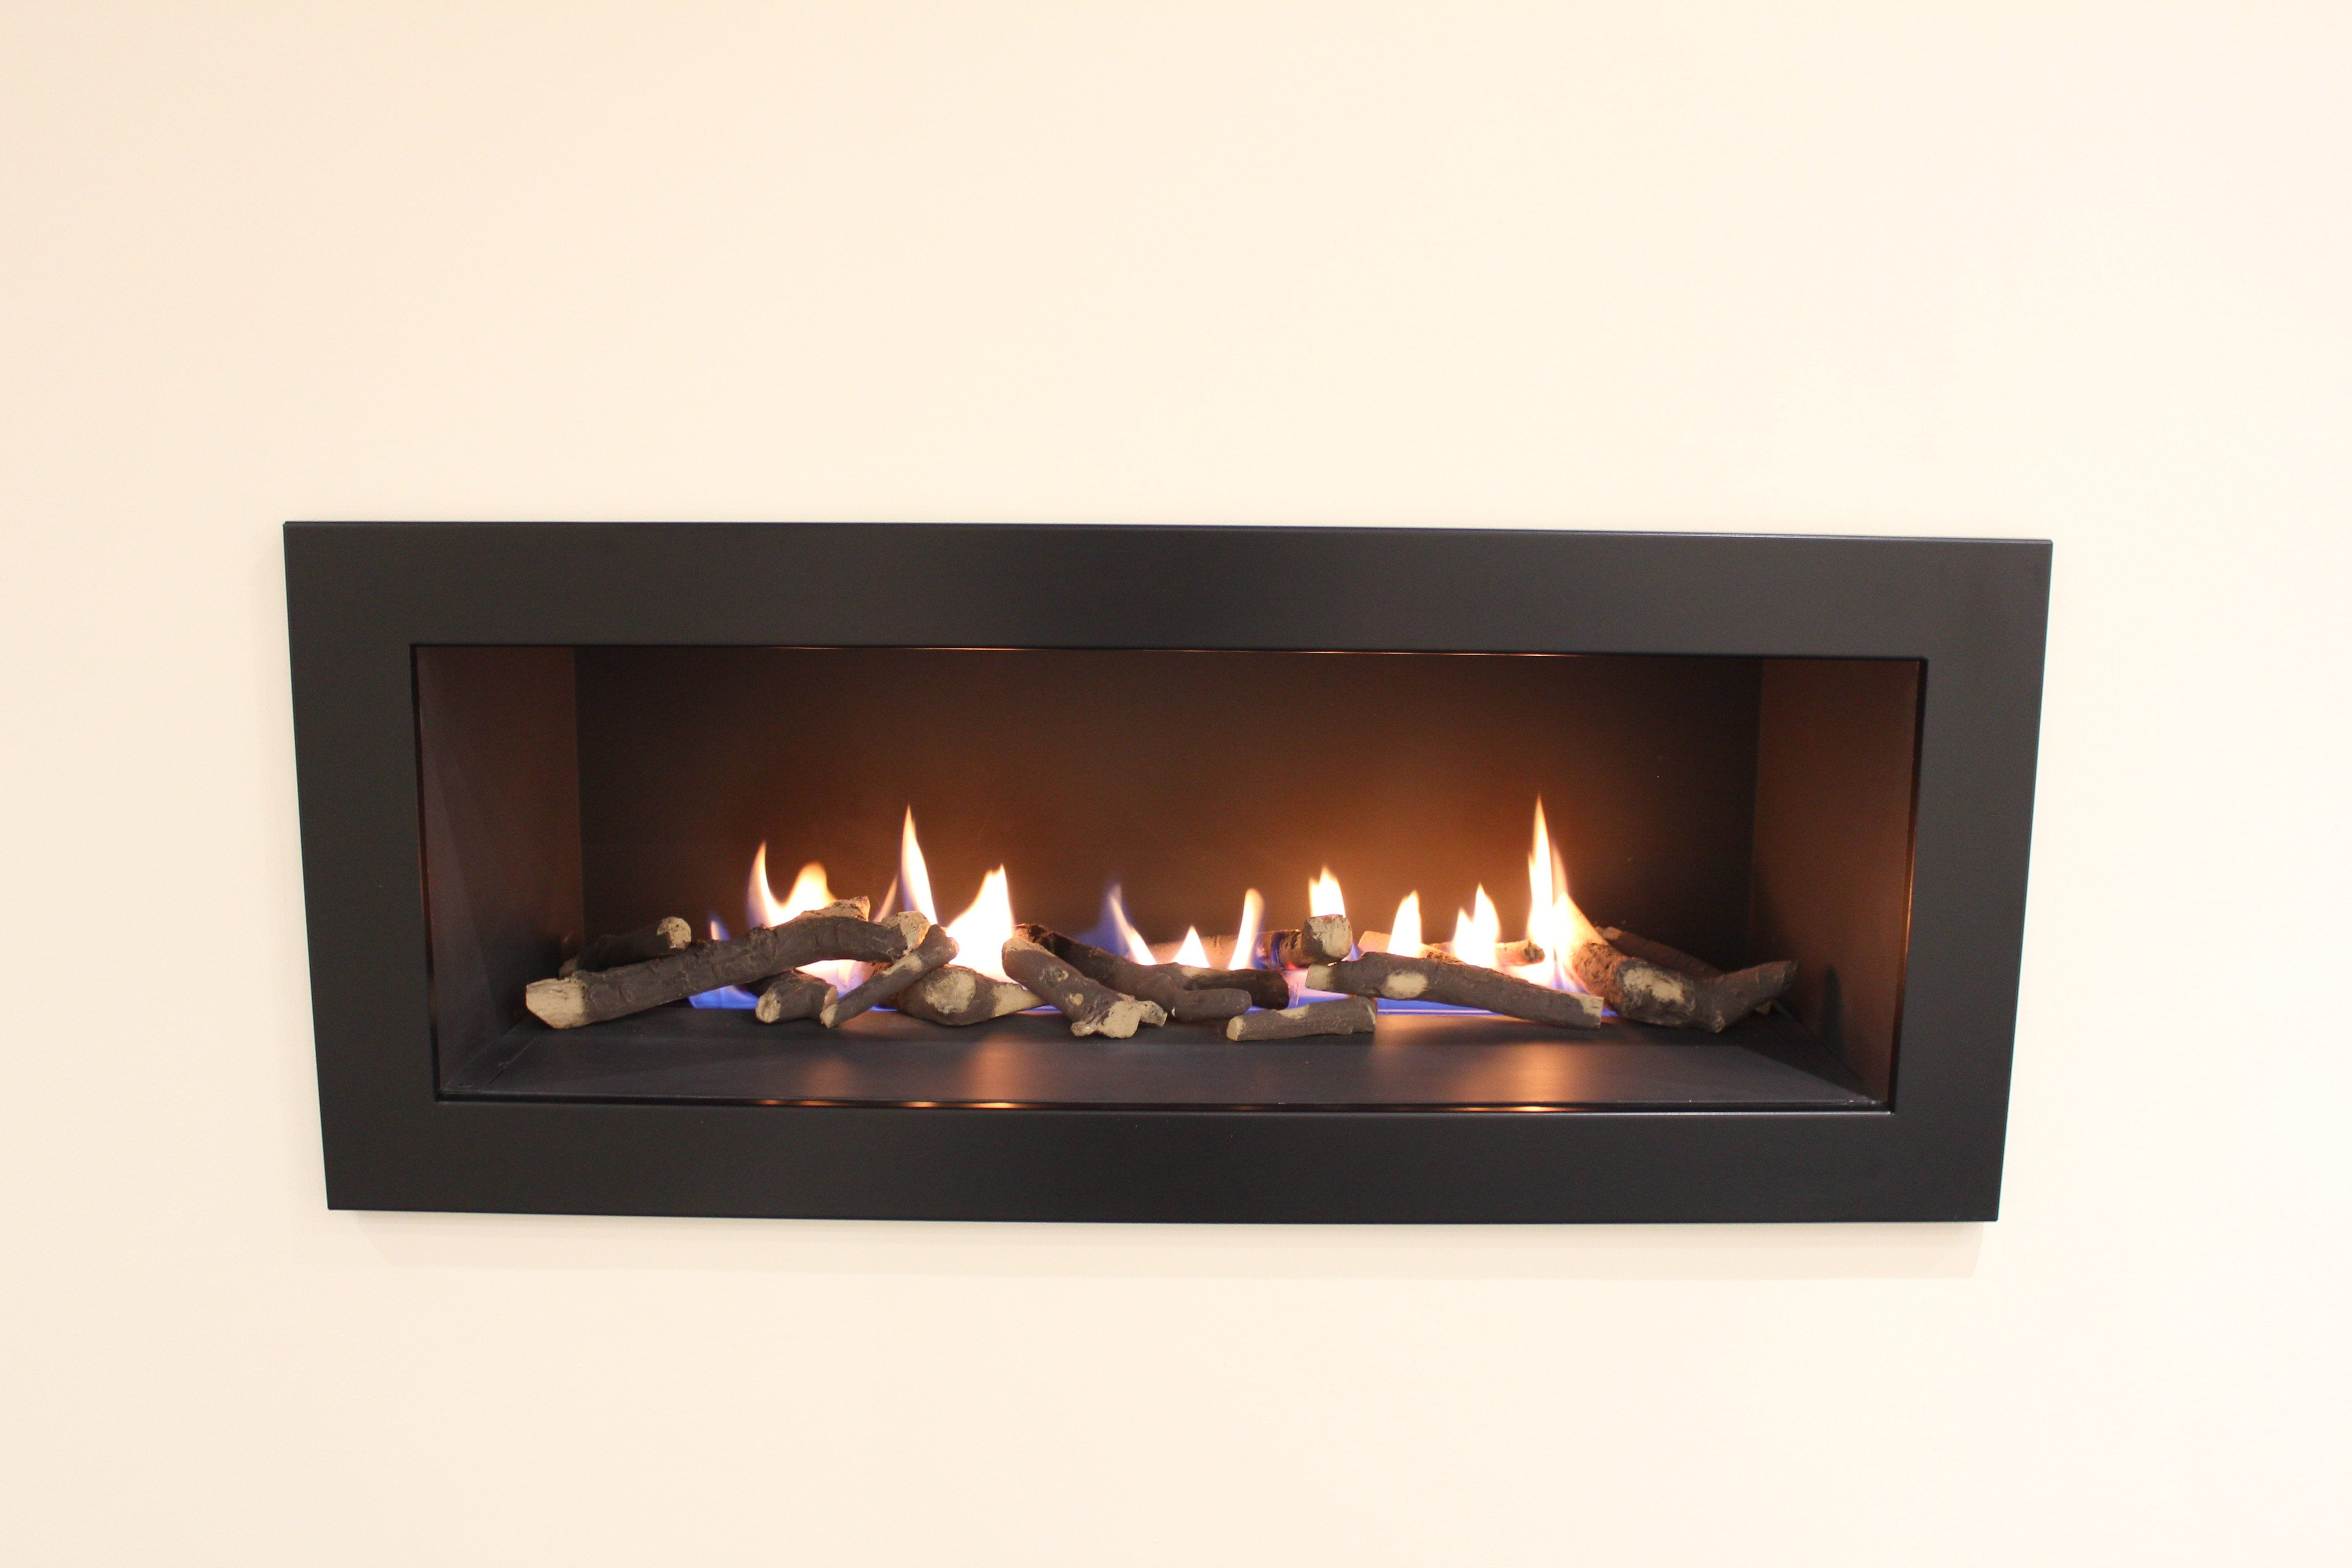 Fire River 1-Product Image